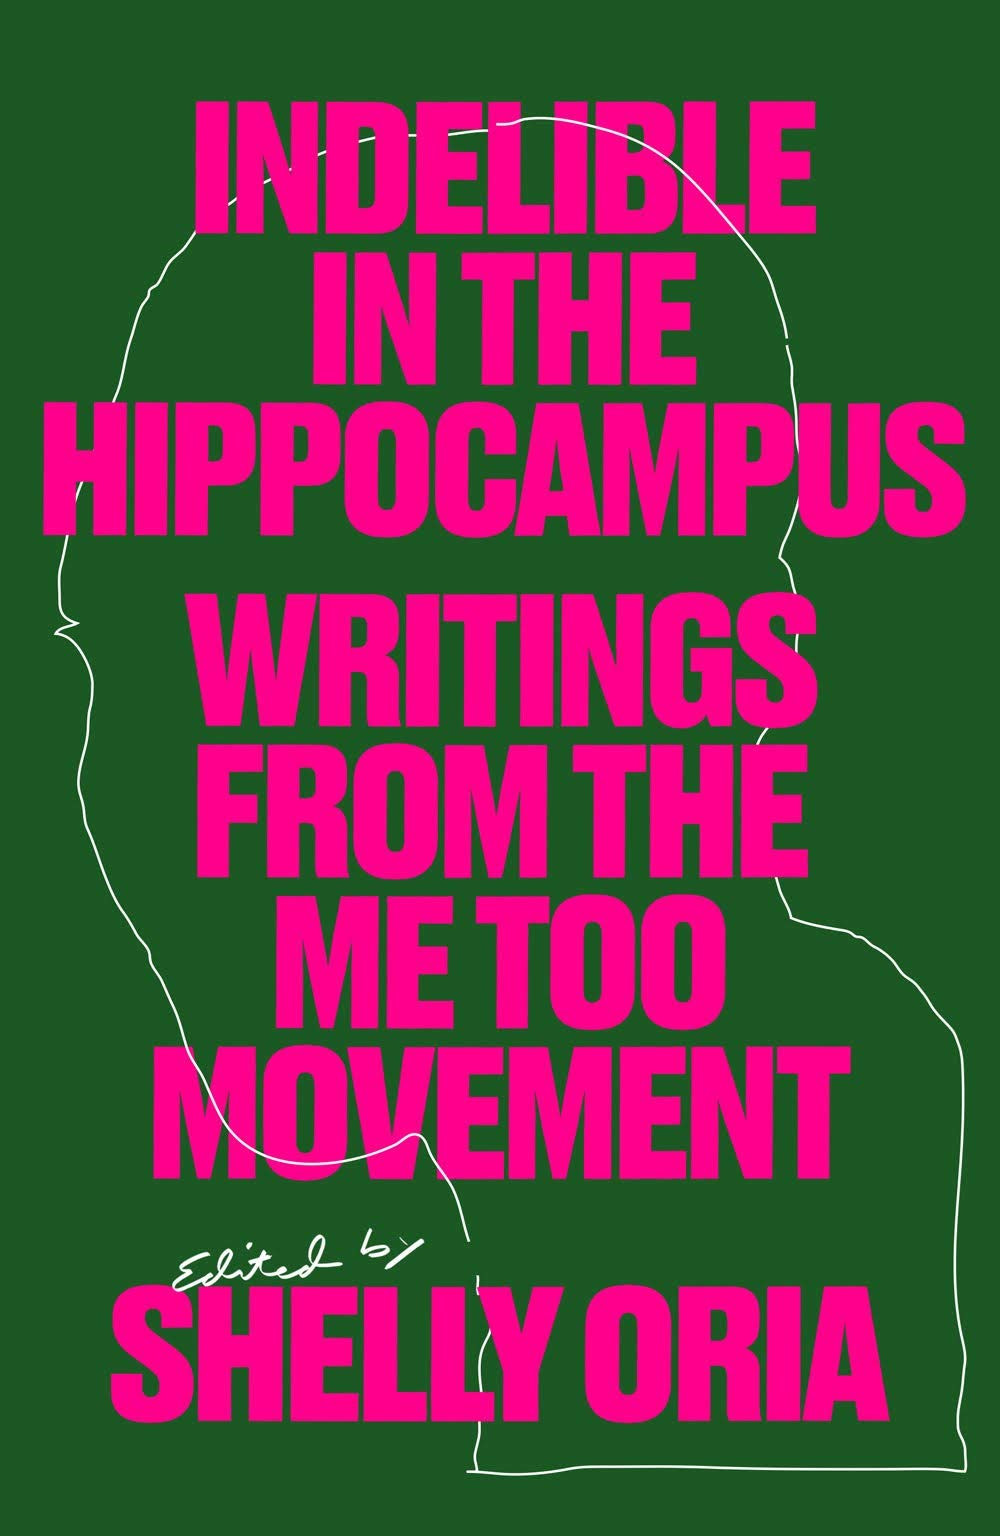 Indelible in the Hippocampus: Writings from the MeToo Movement, edited by Shelly Oria : the book slut book reviews